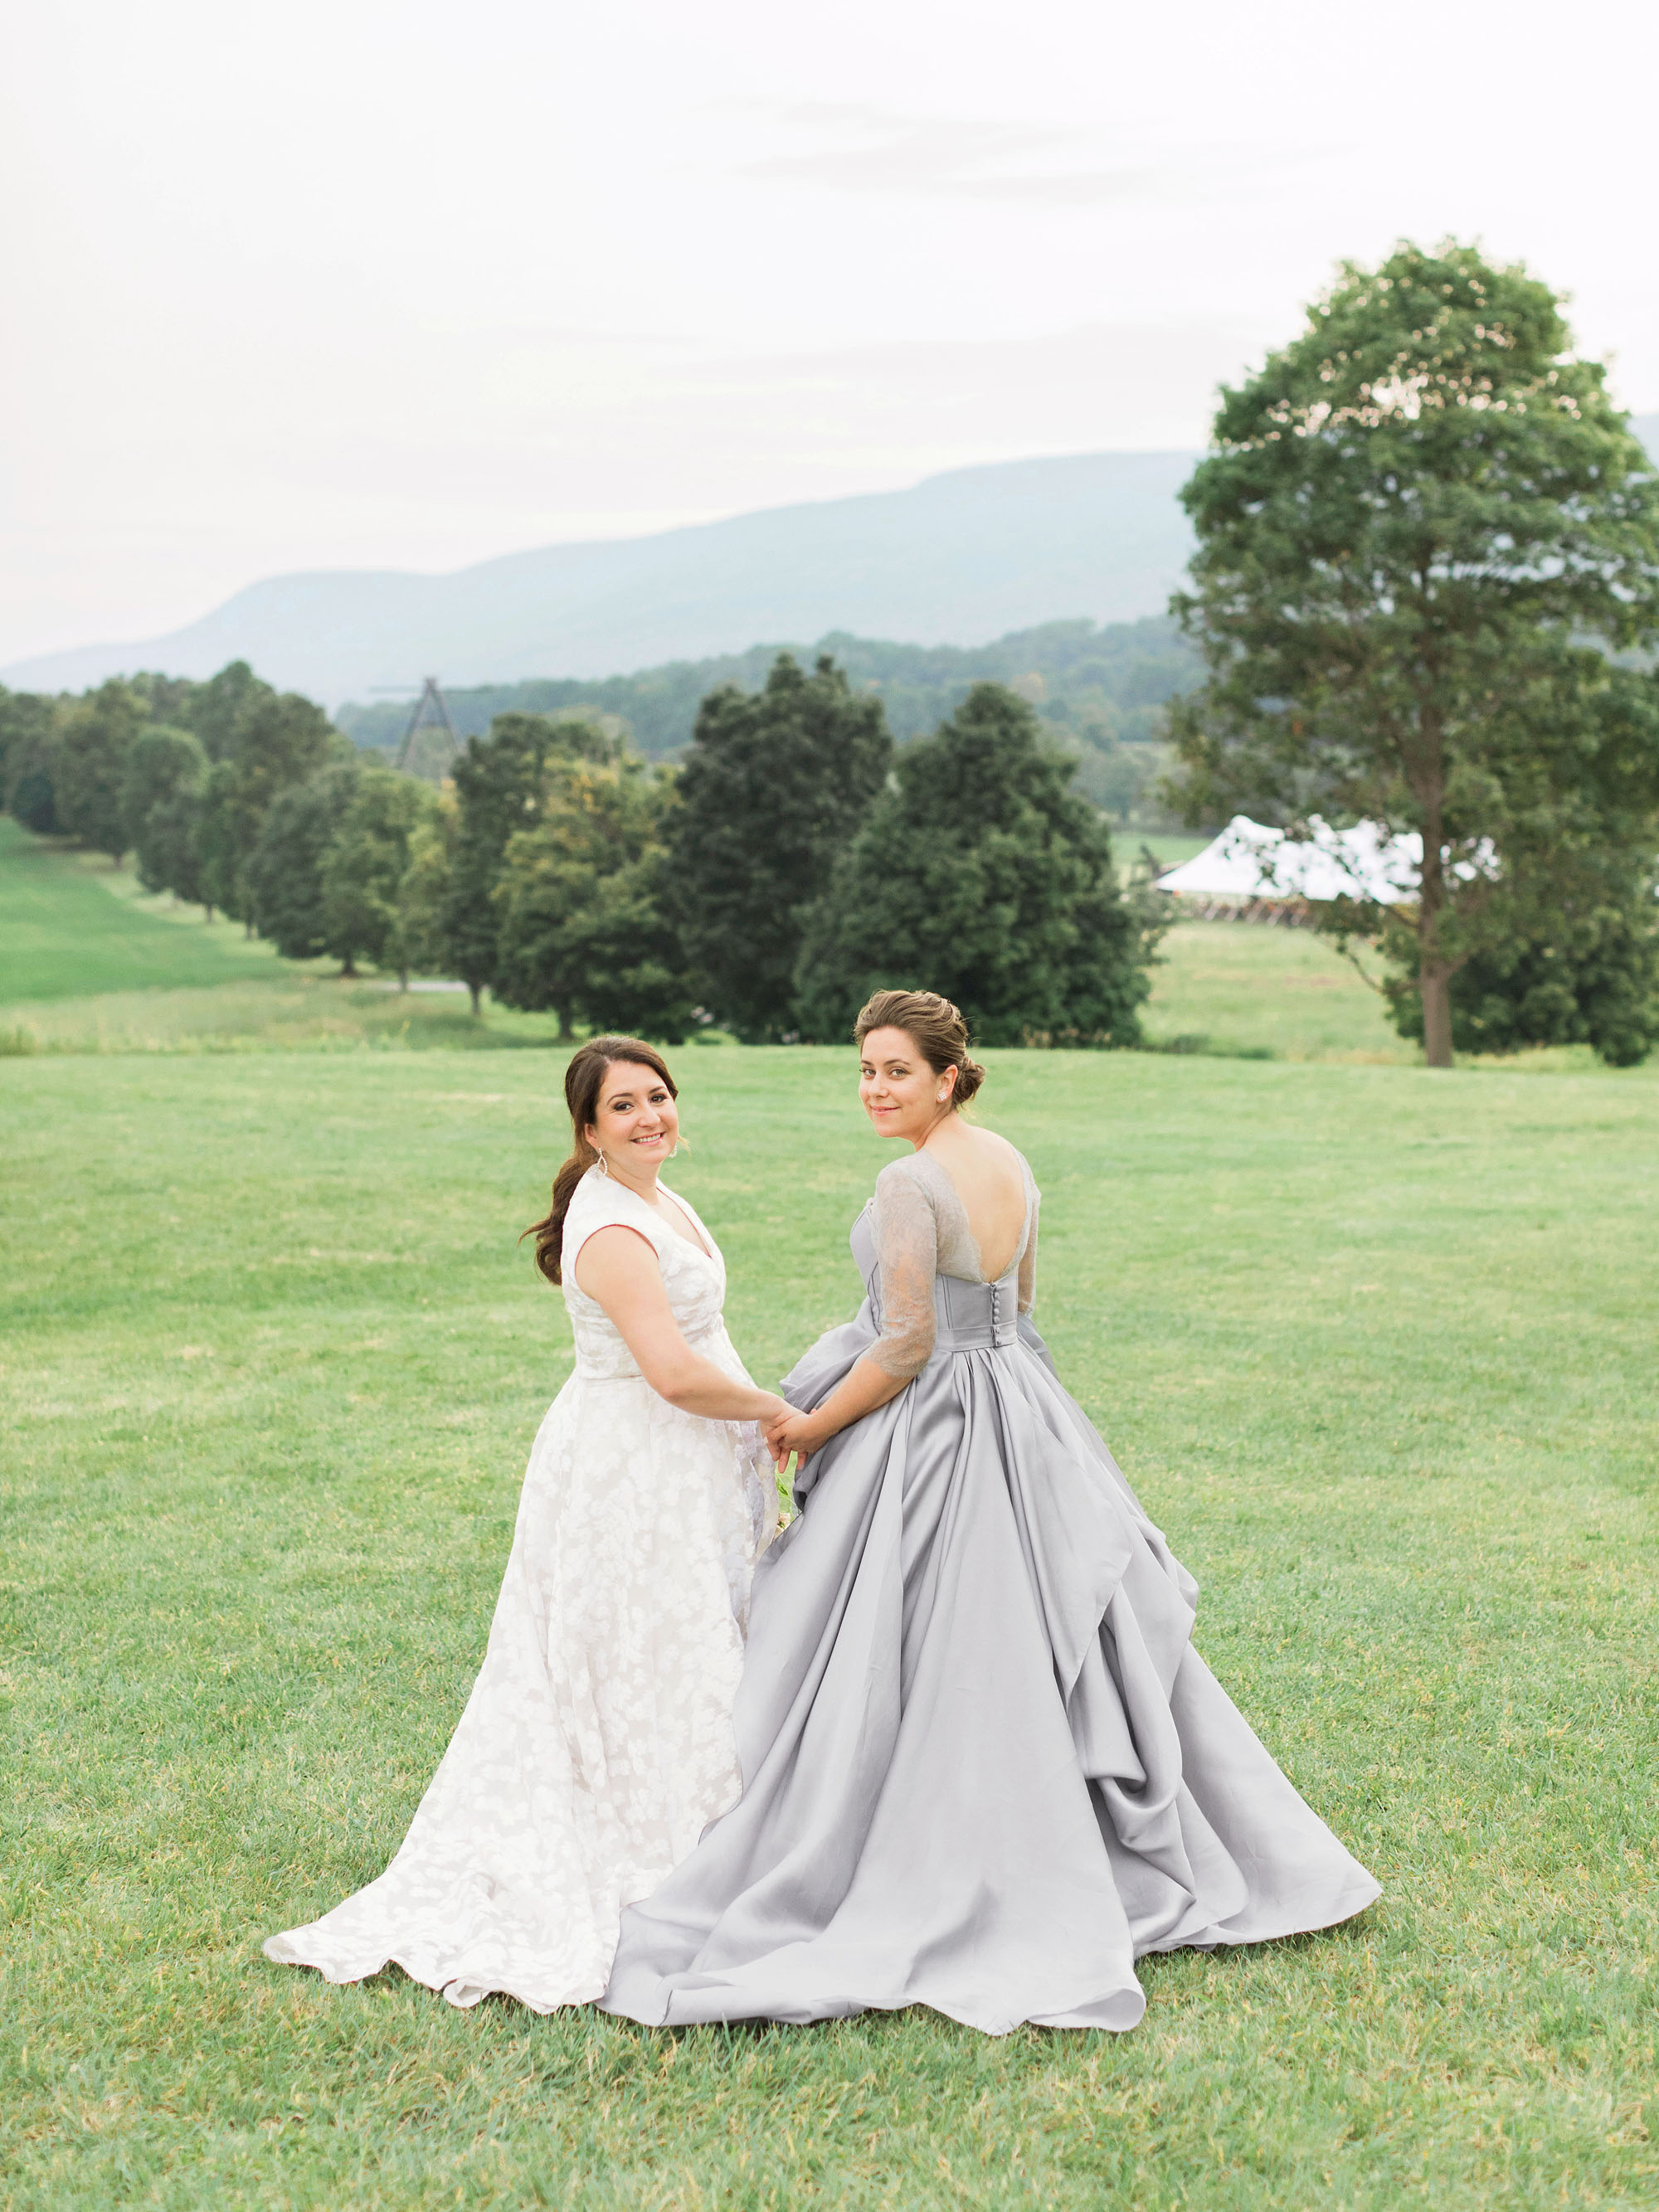 White and Gray Wedding Dresses